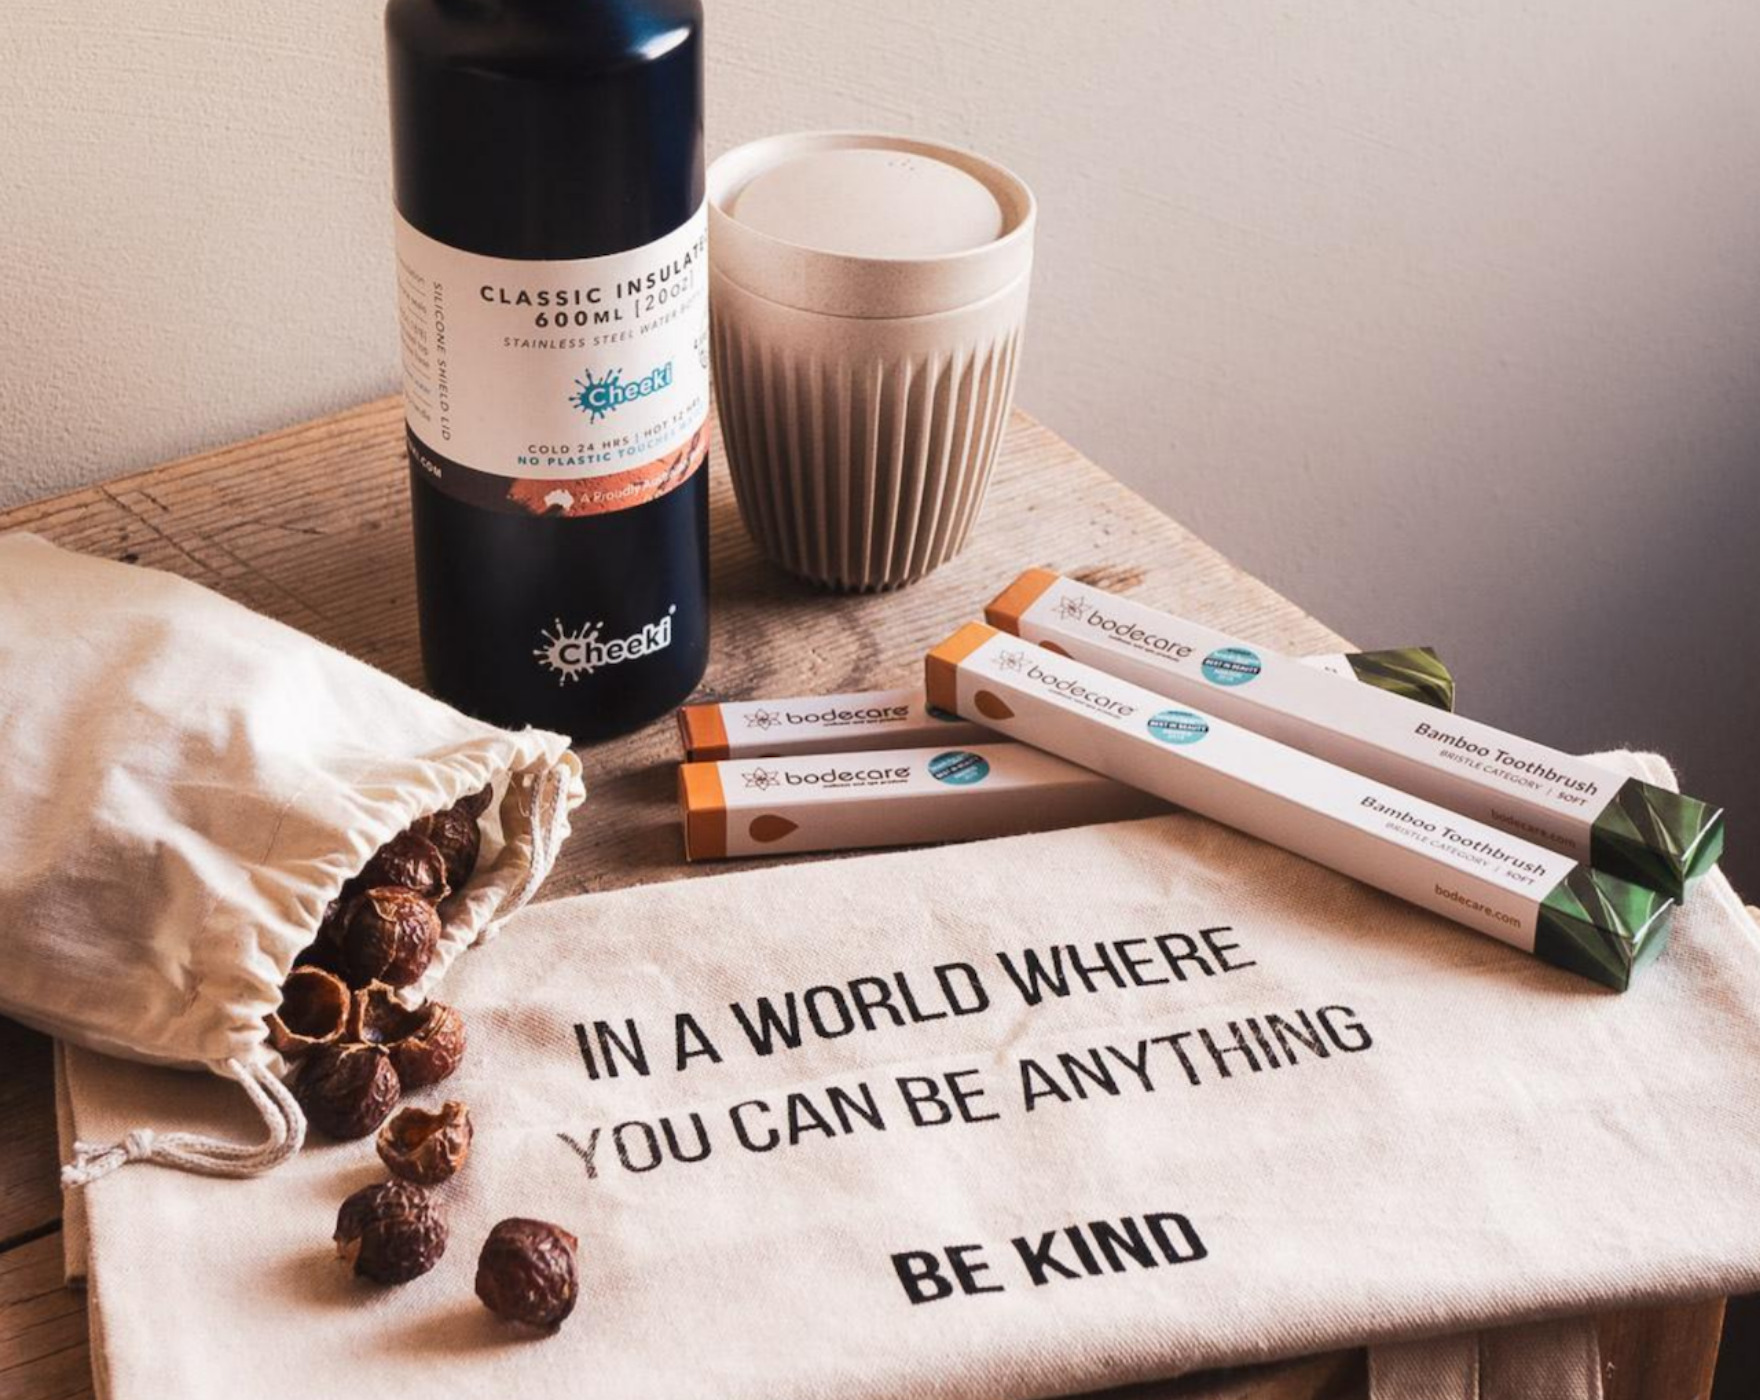 Be Kind Co products on a table